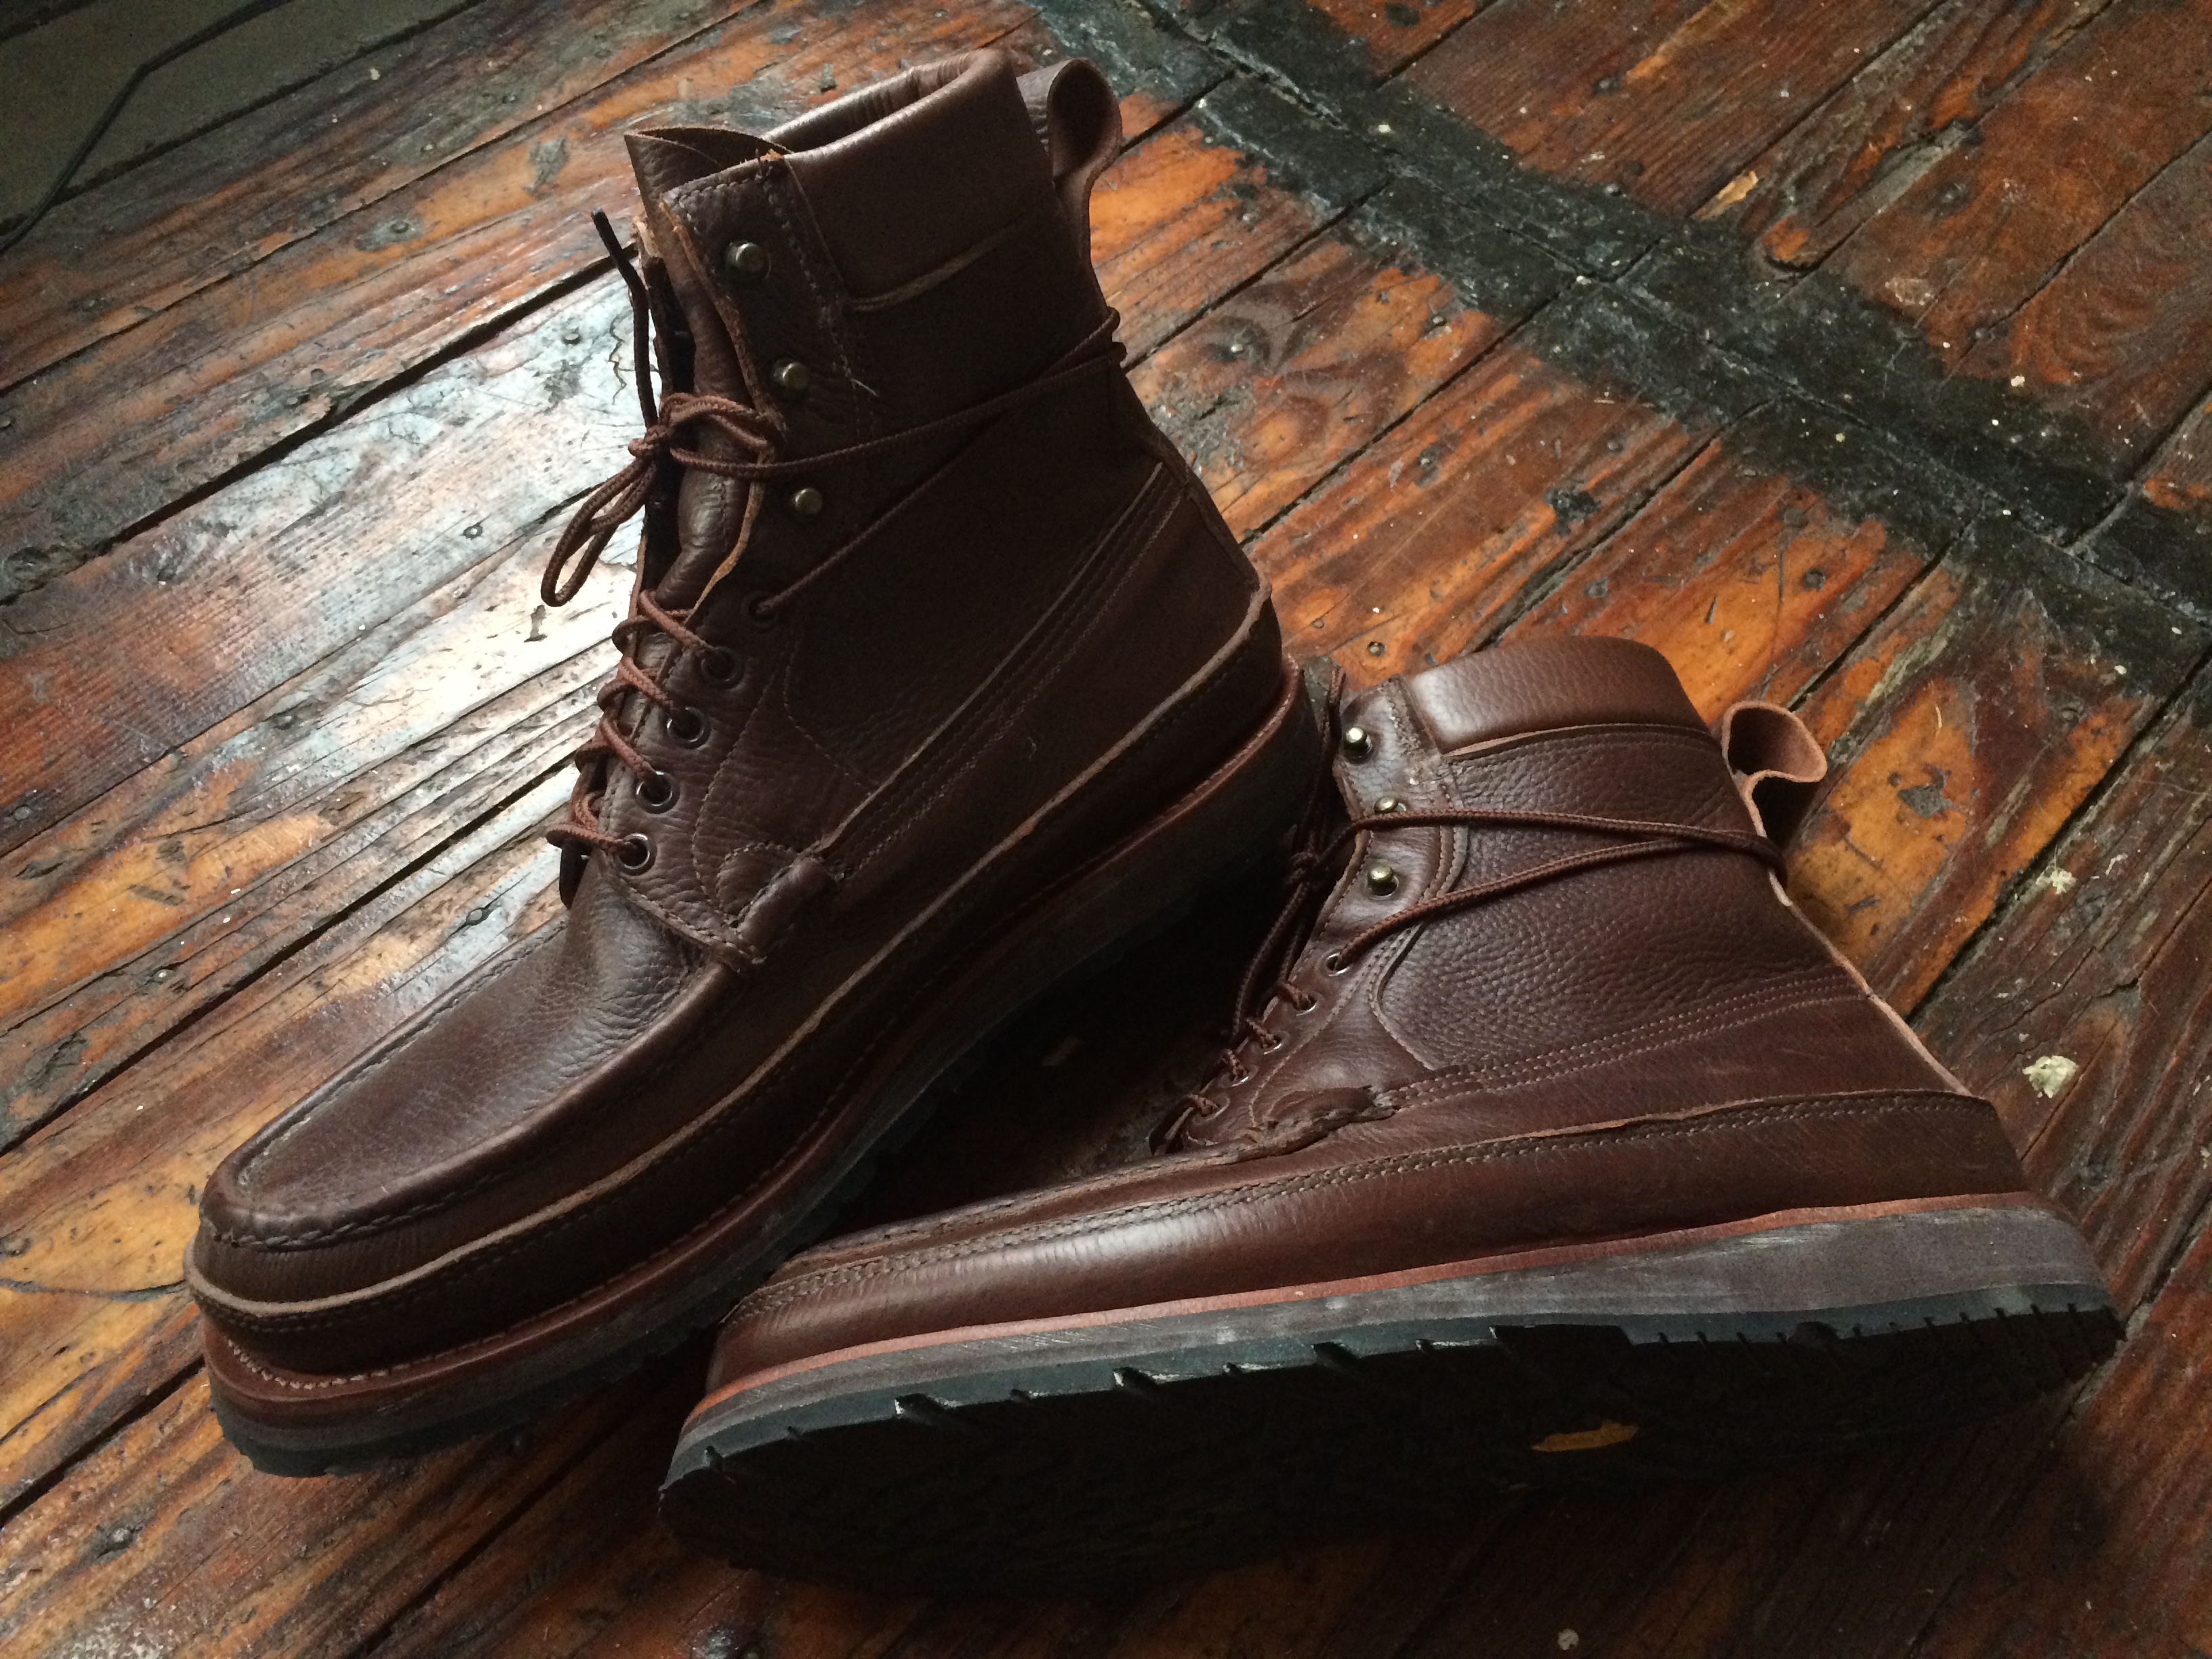 687774c1c77 Boots made by Russell Moccasin Company -- experiences   Page 12 ...